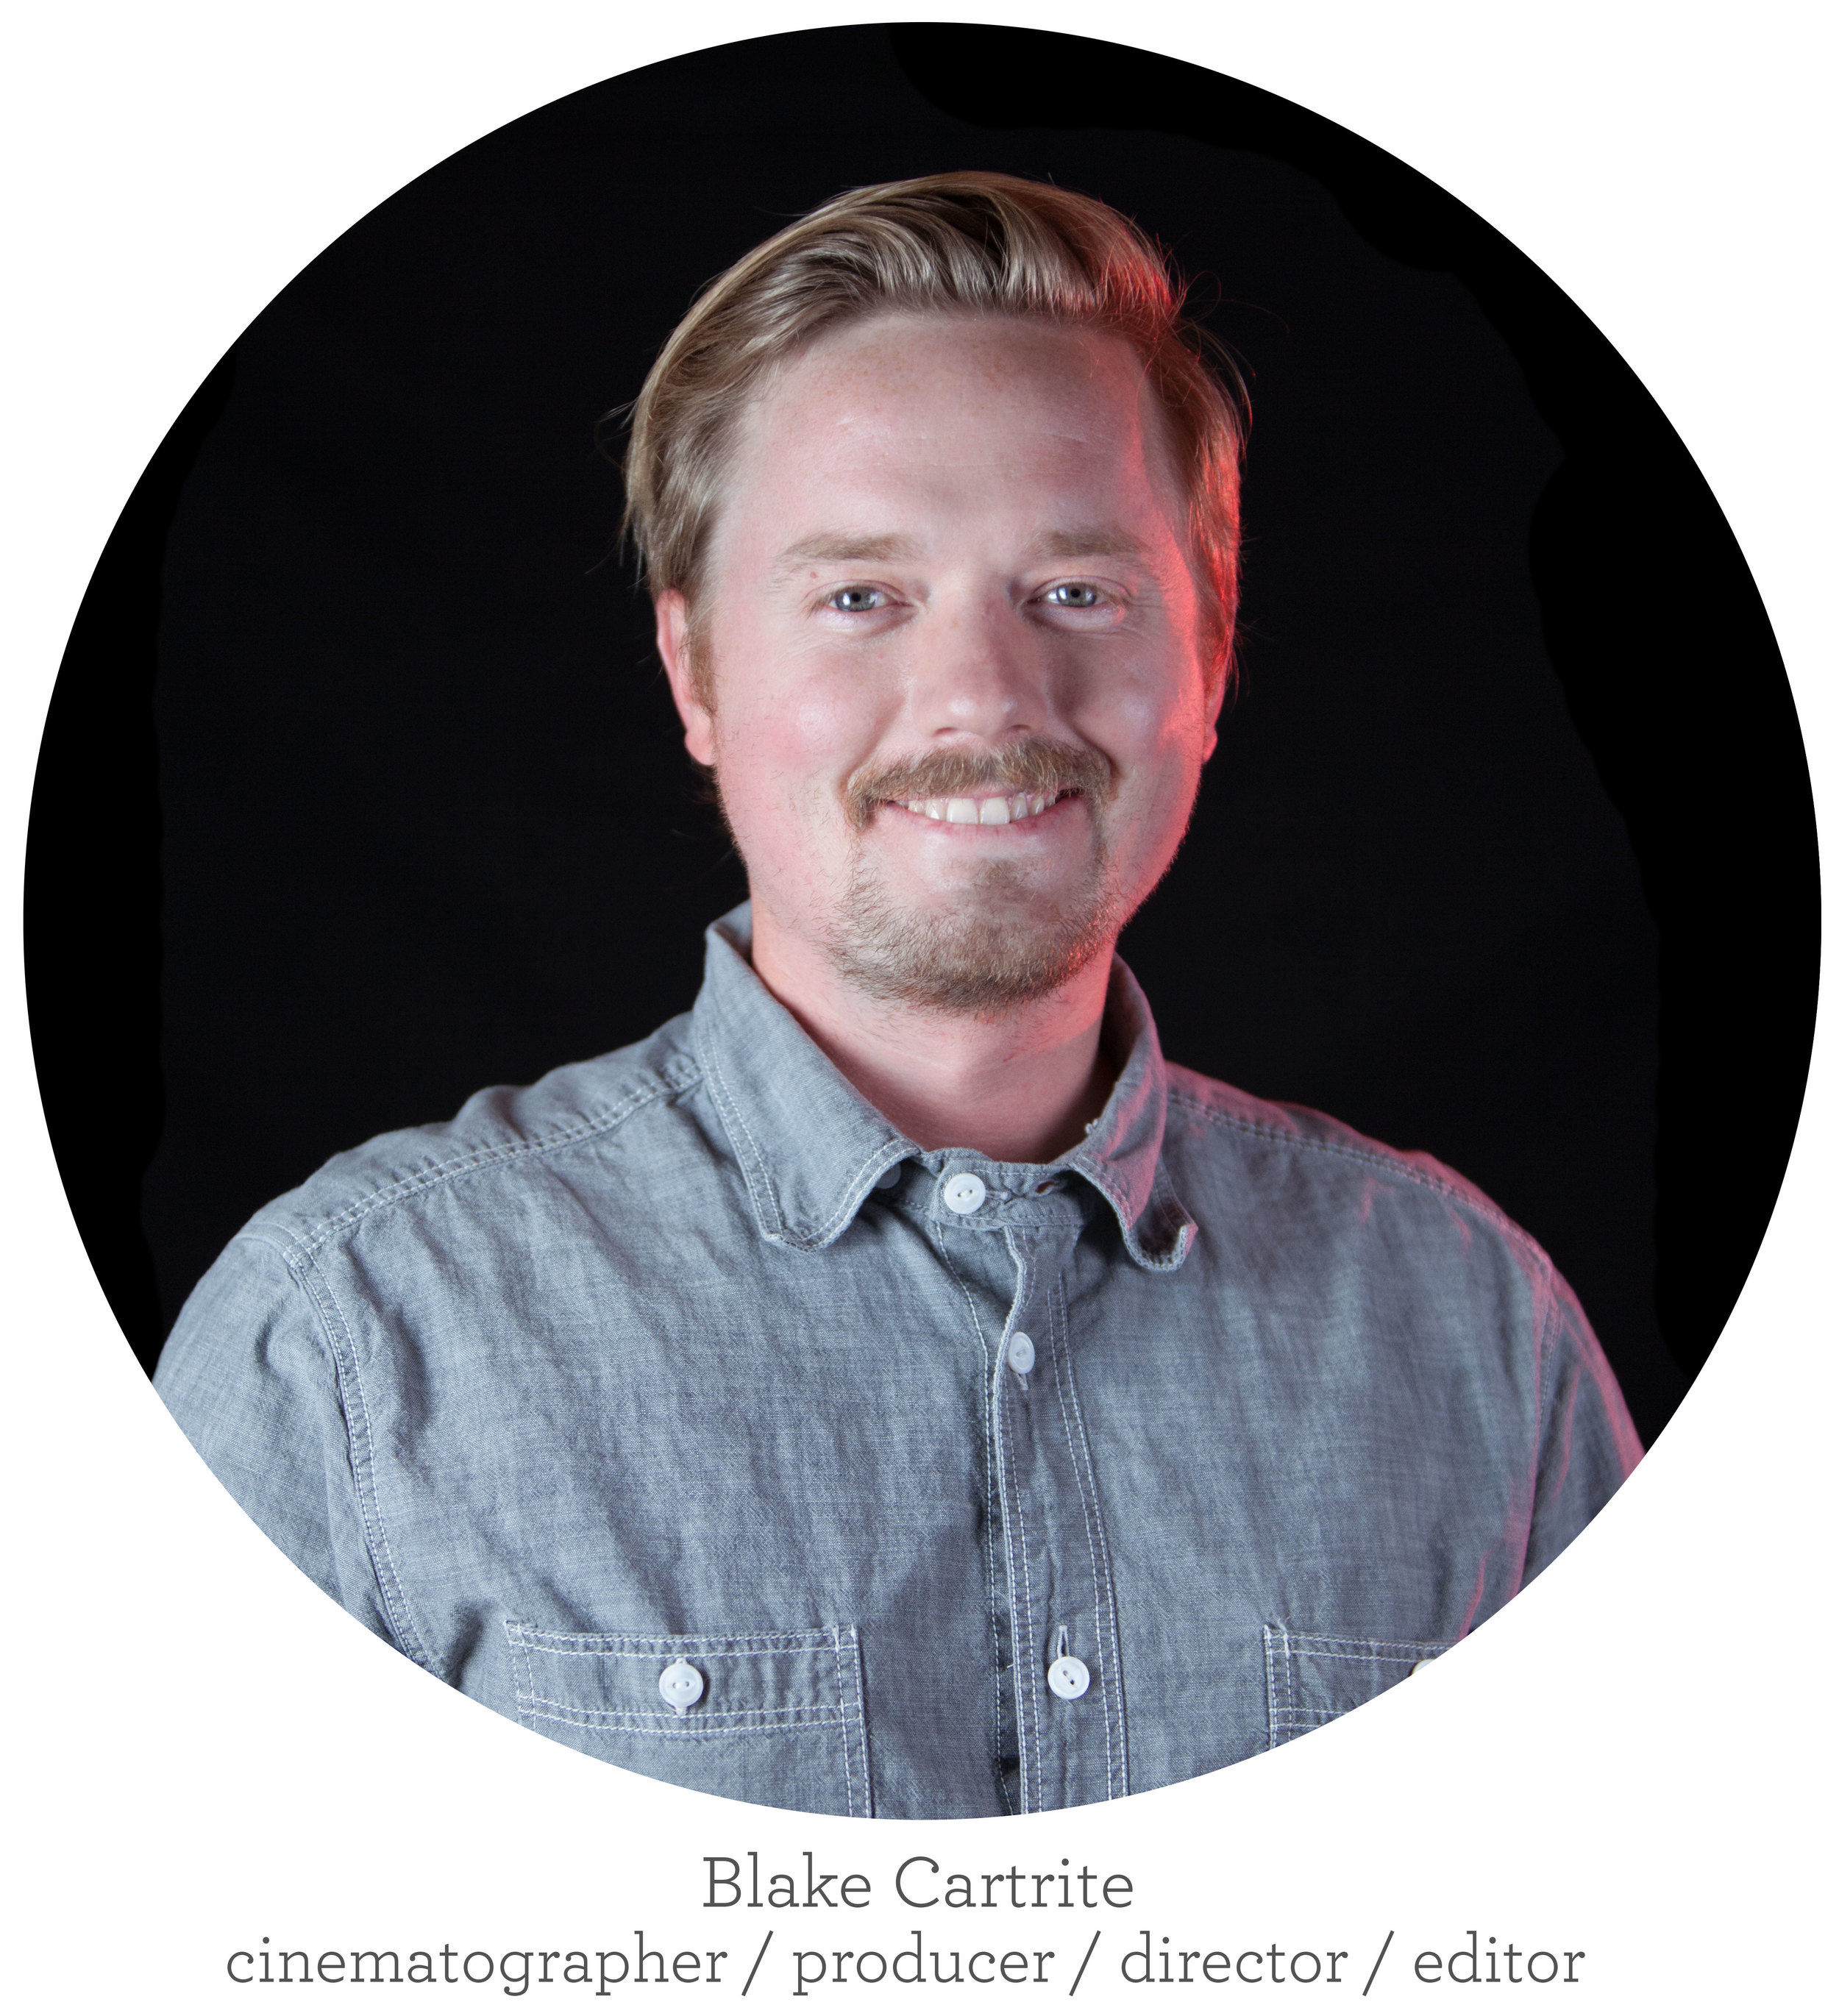 blake cartrite simple and historic